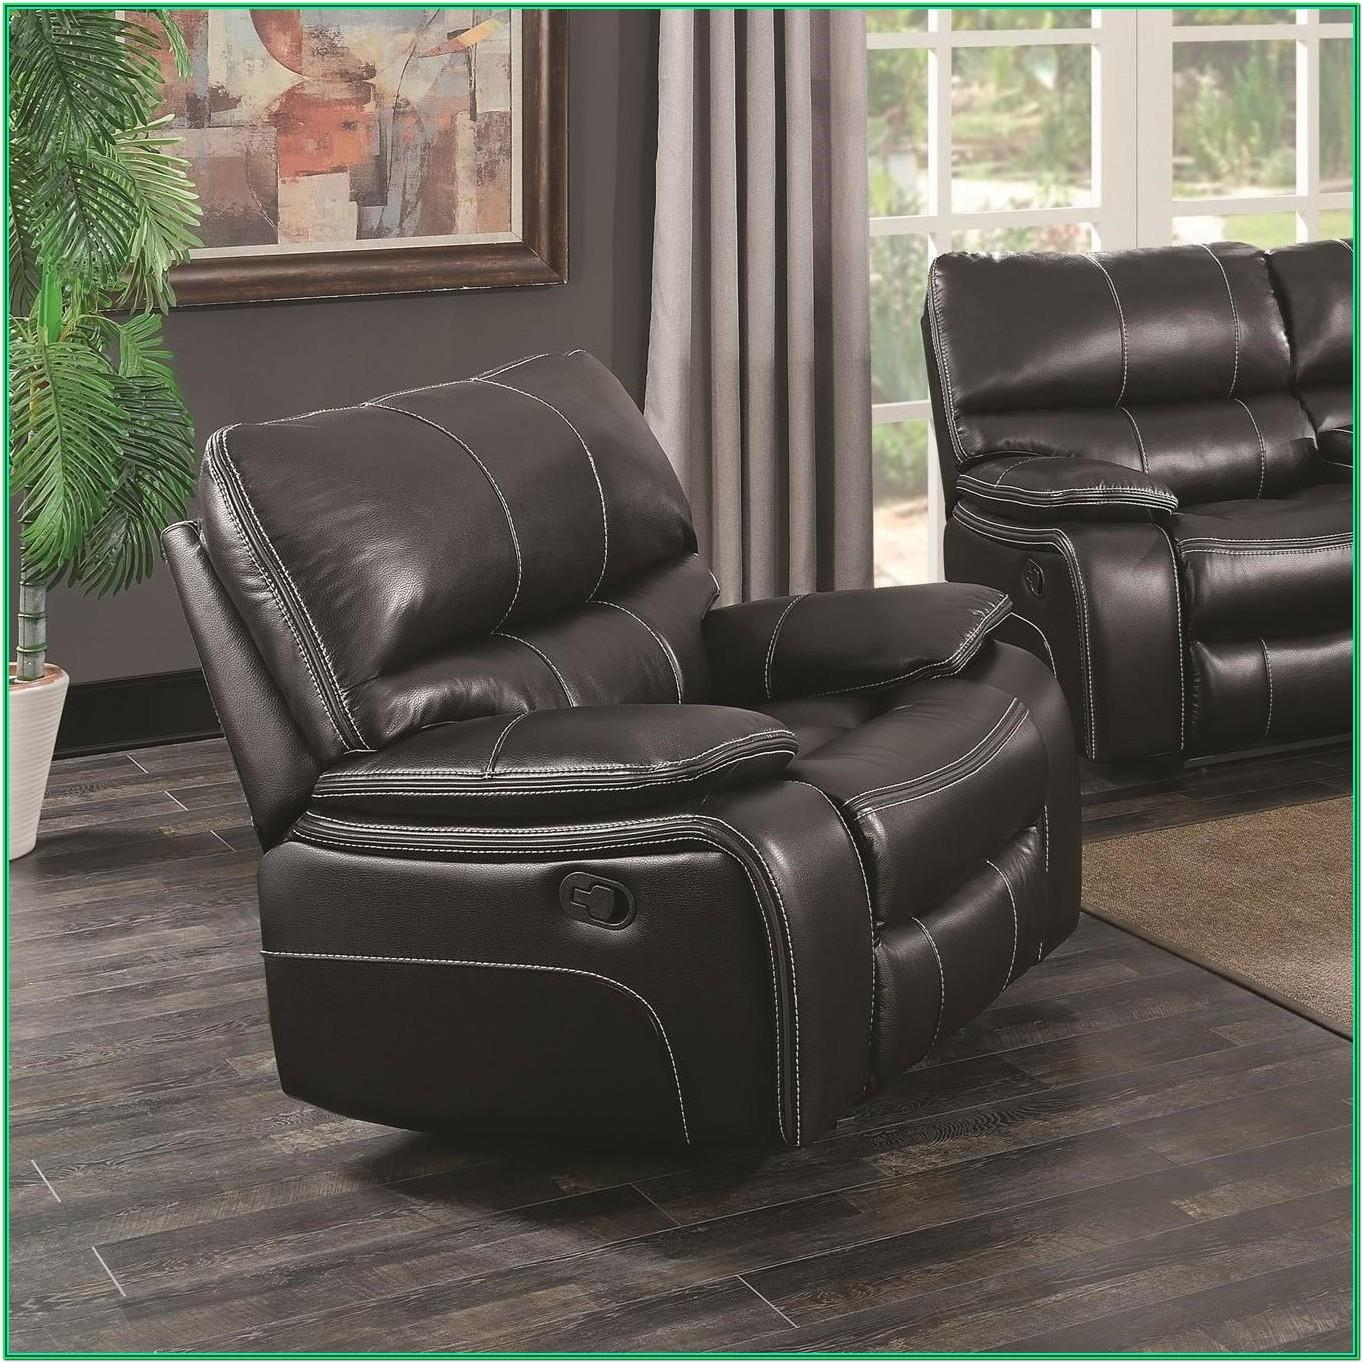 Living Room Chairs With Lumbar Support